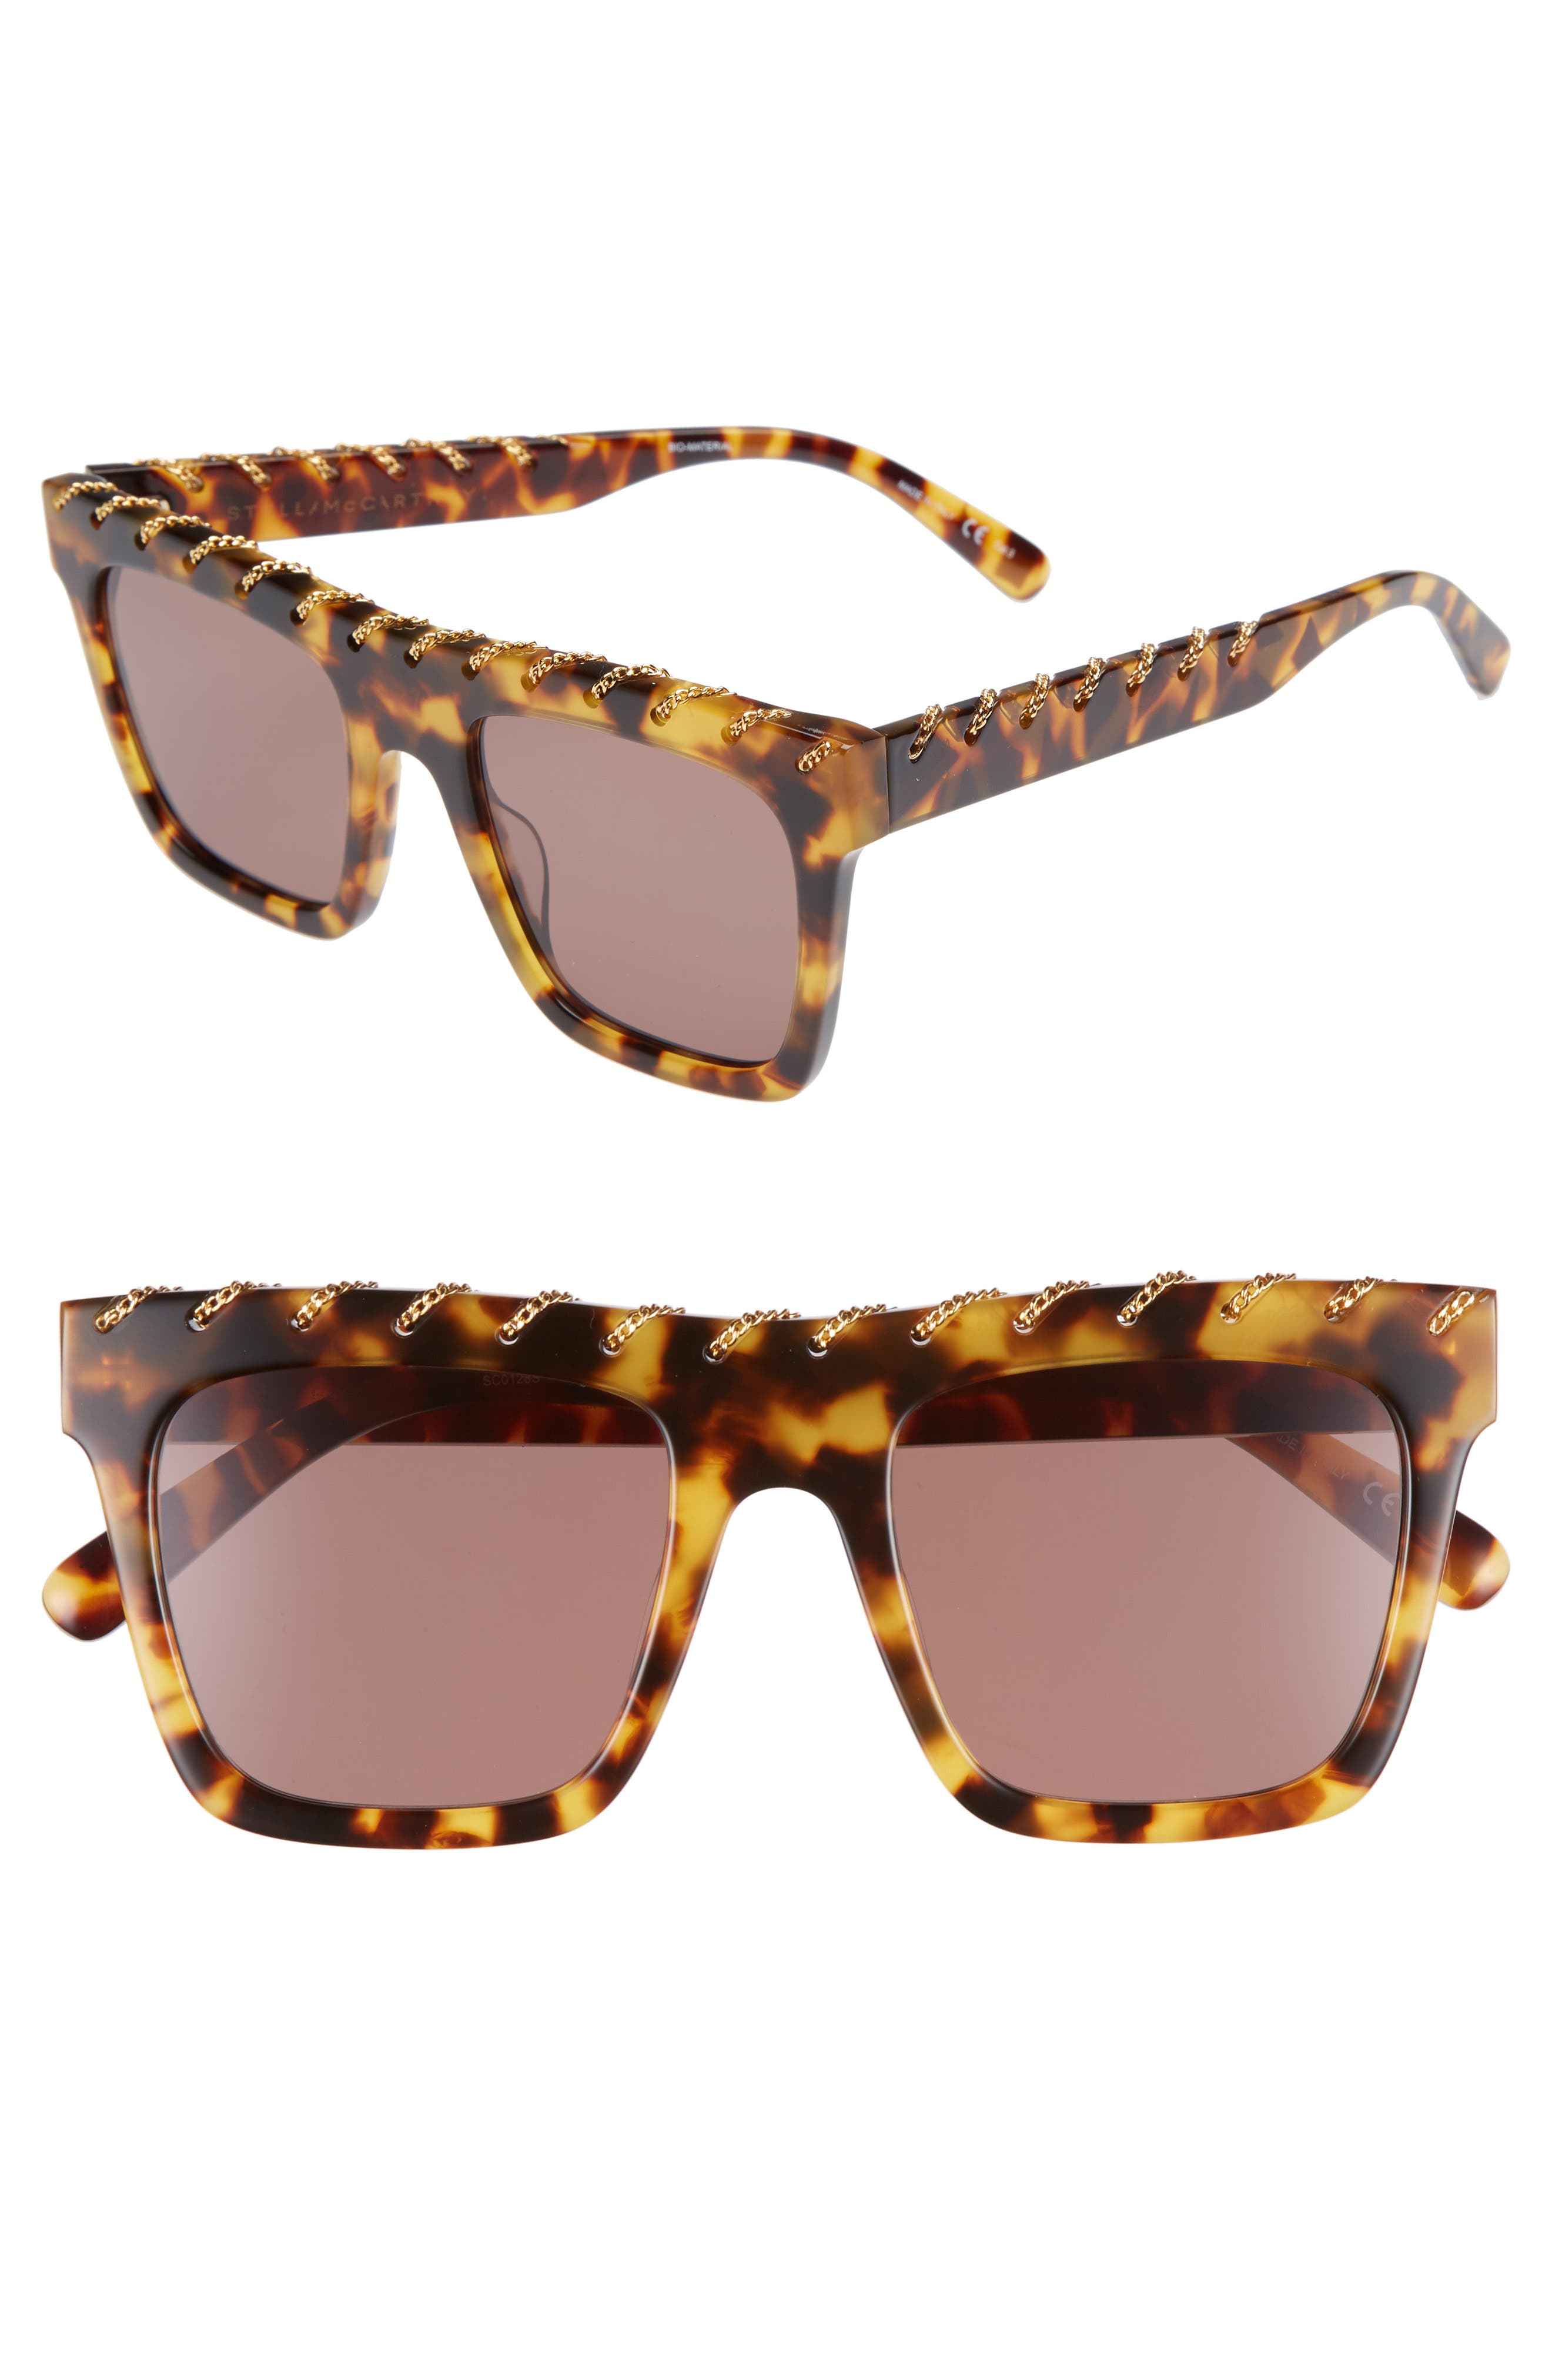 51mm Chain Detail Square Sunglasses,                         Main,                         color, 212